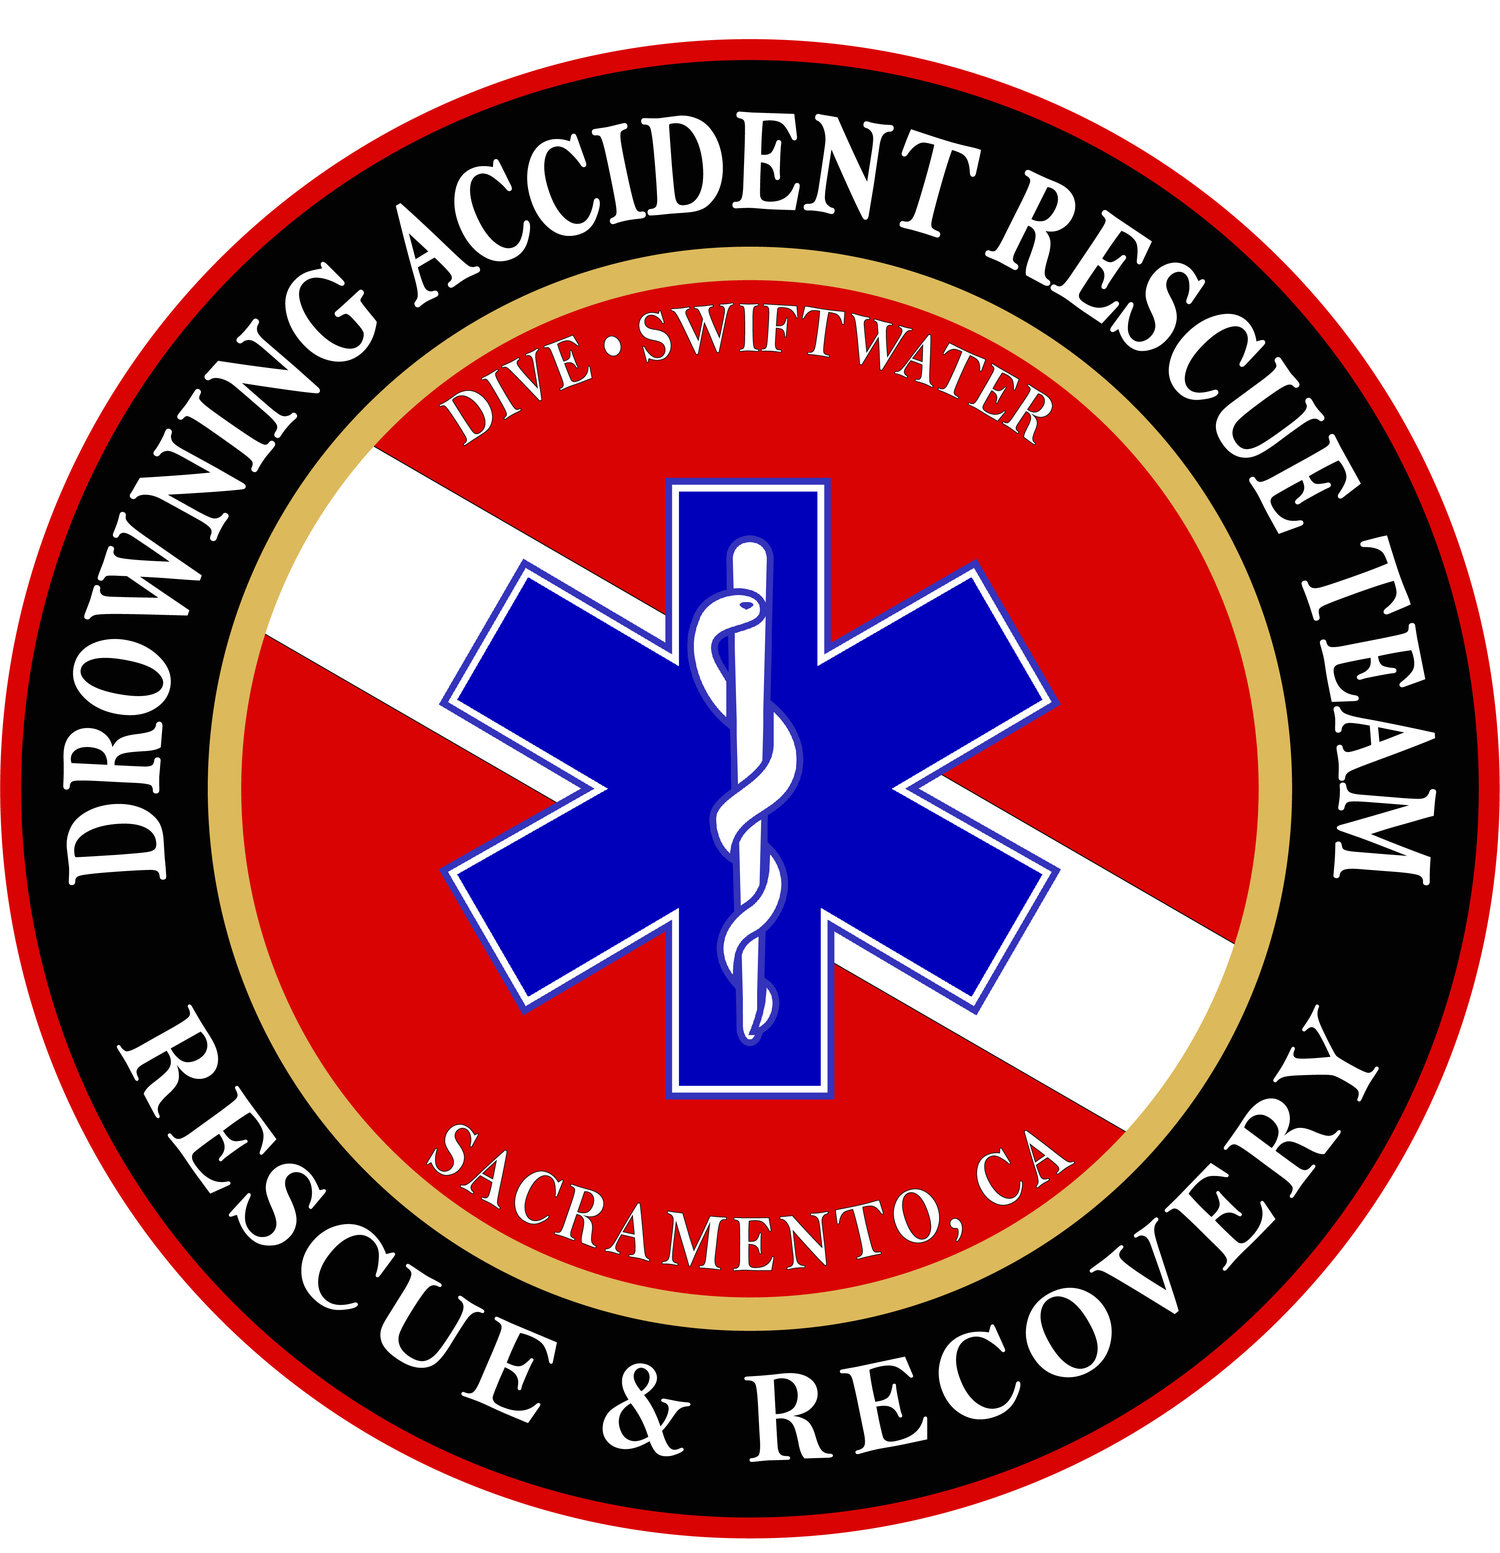 Drowning Accident Rescue Team